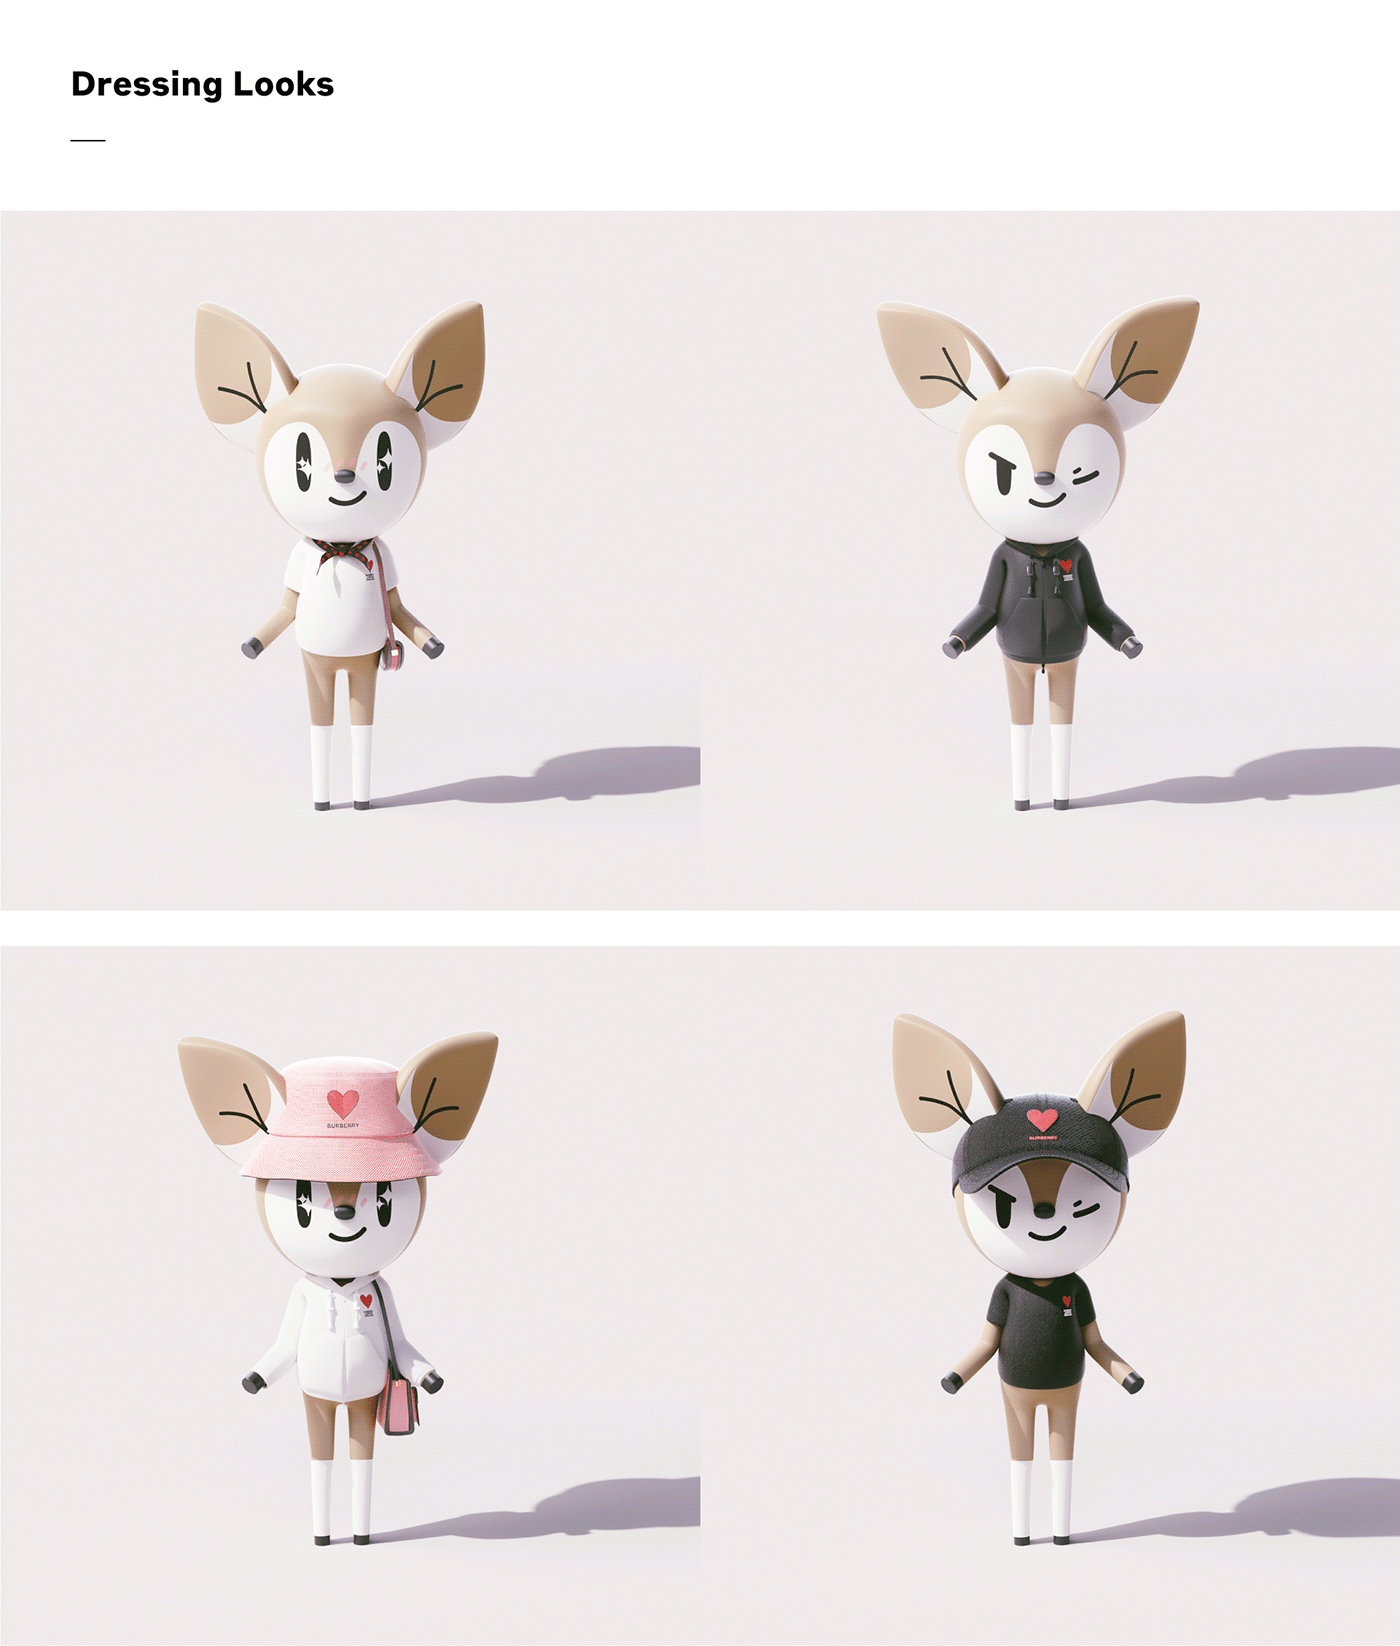 3D after effects artwork c4d Character cinema 4d cute modeling motion photoshop